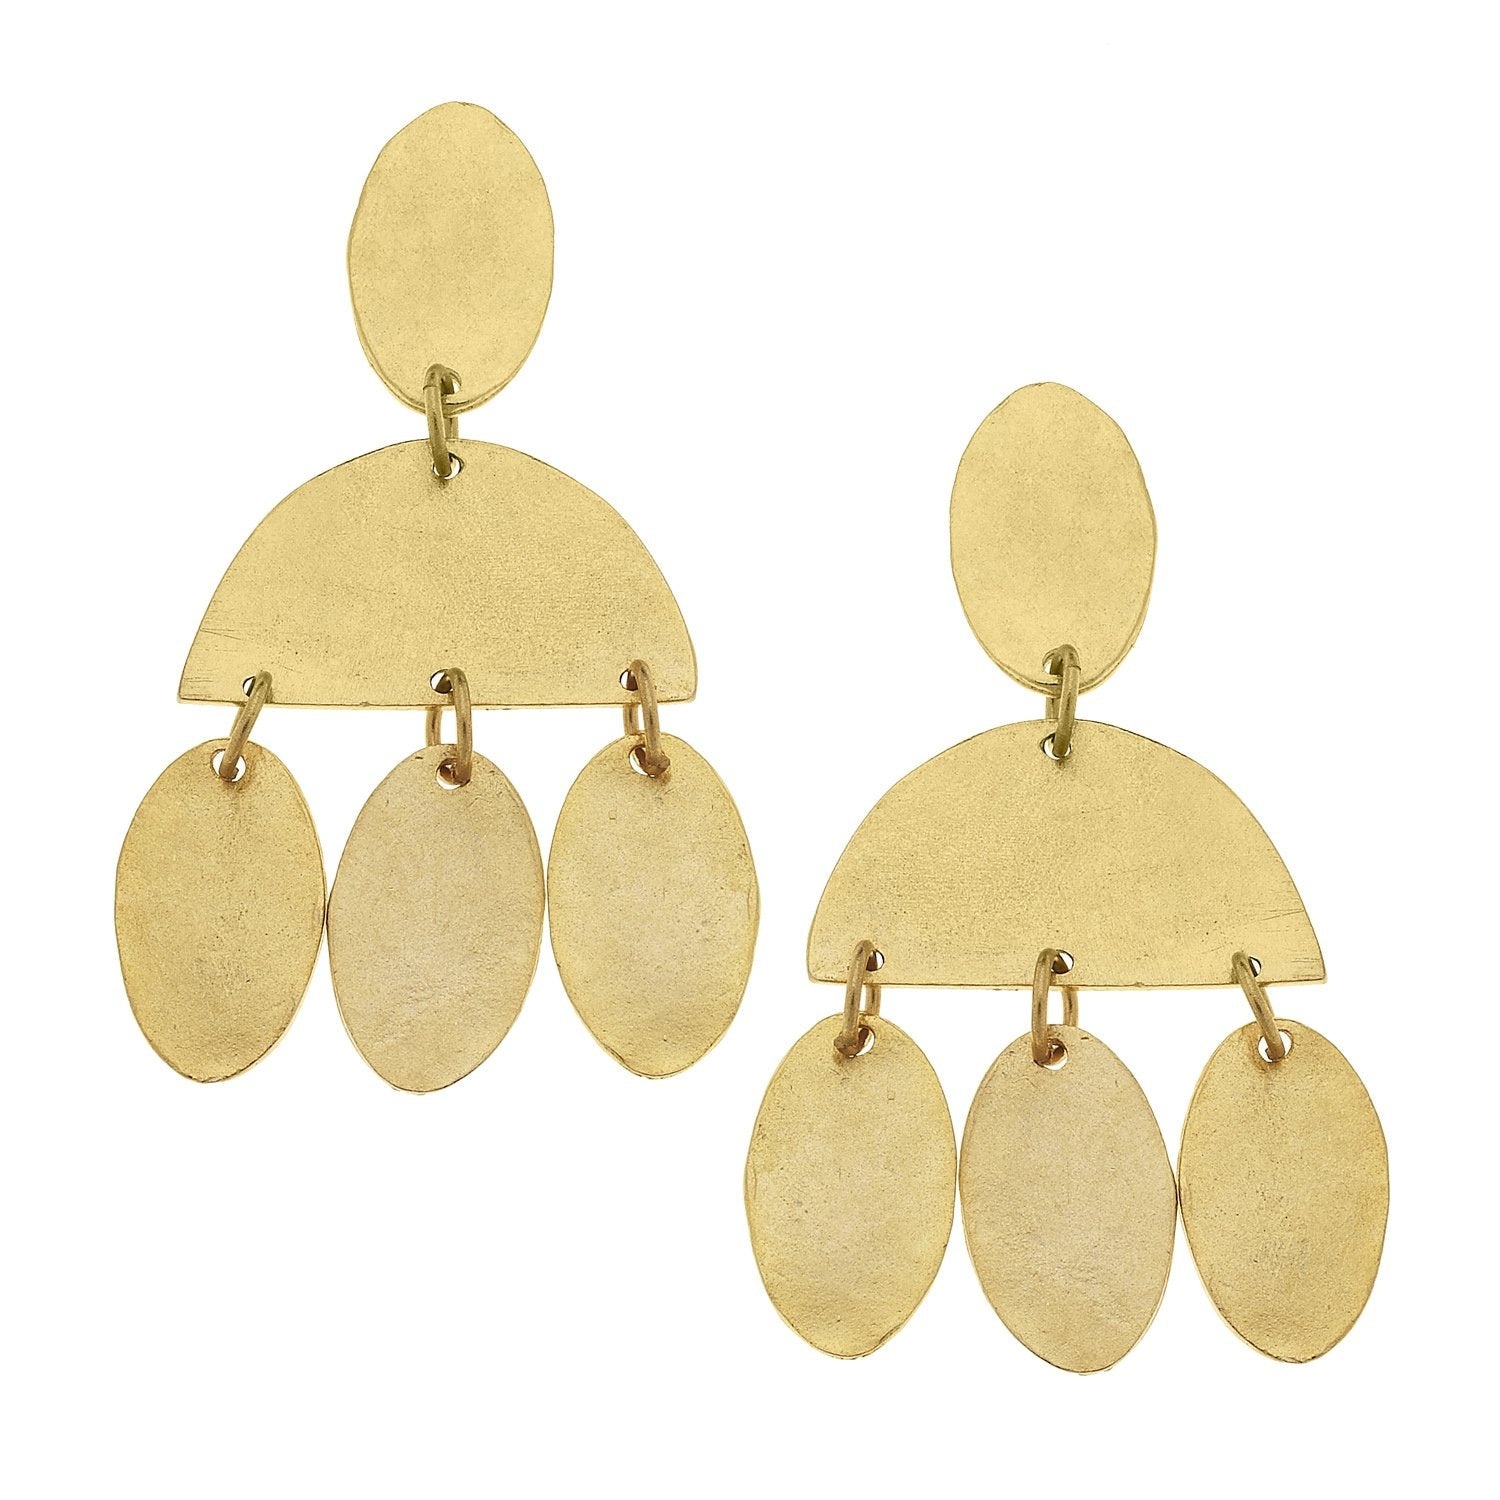 Modern Chandelier Earrings